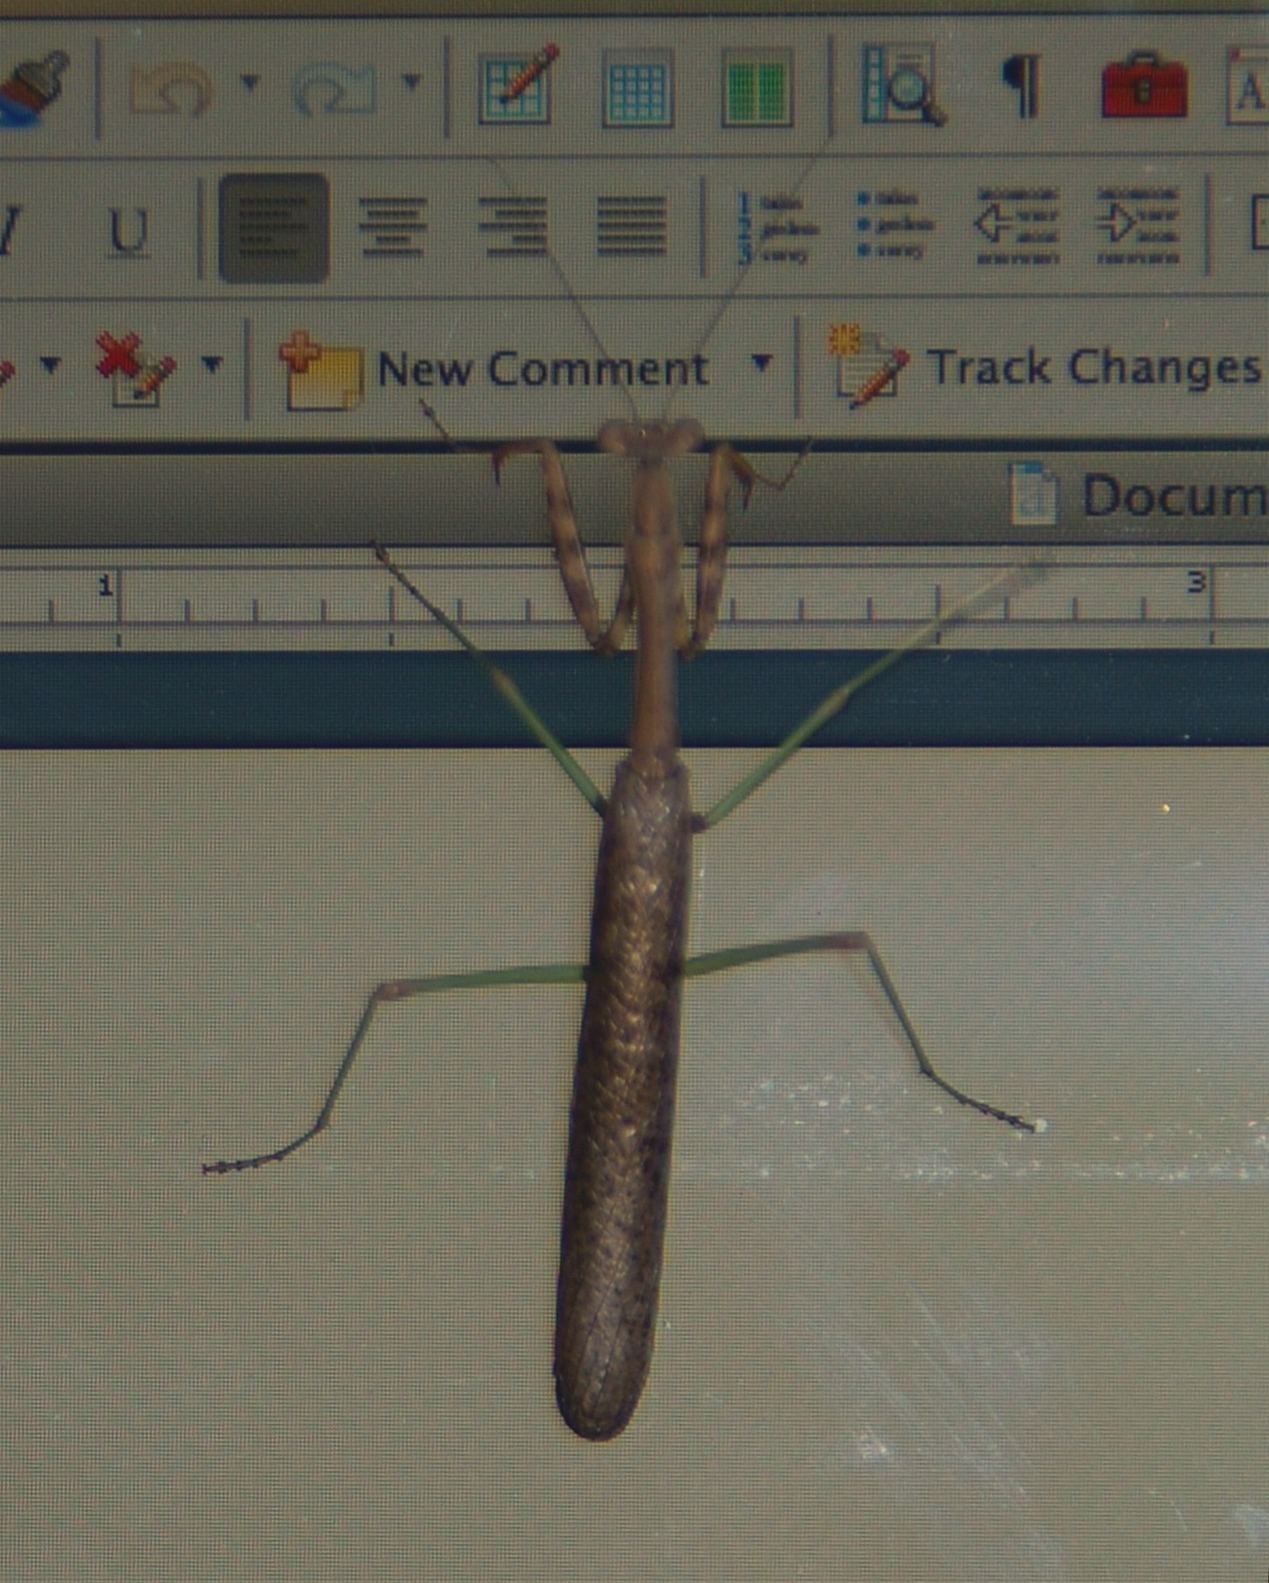 """Praying mantis on a Macbook screen, tapping on the """"New Comment"""" button of a Word program toolbar."""